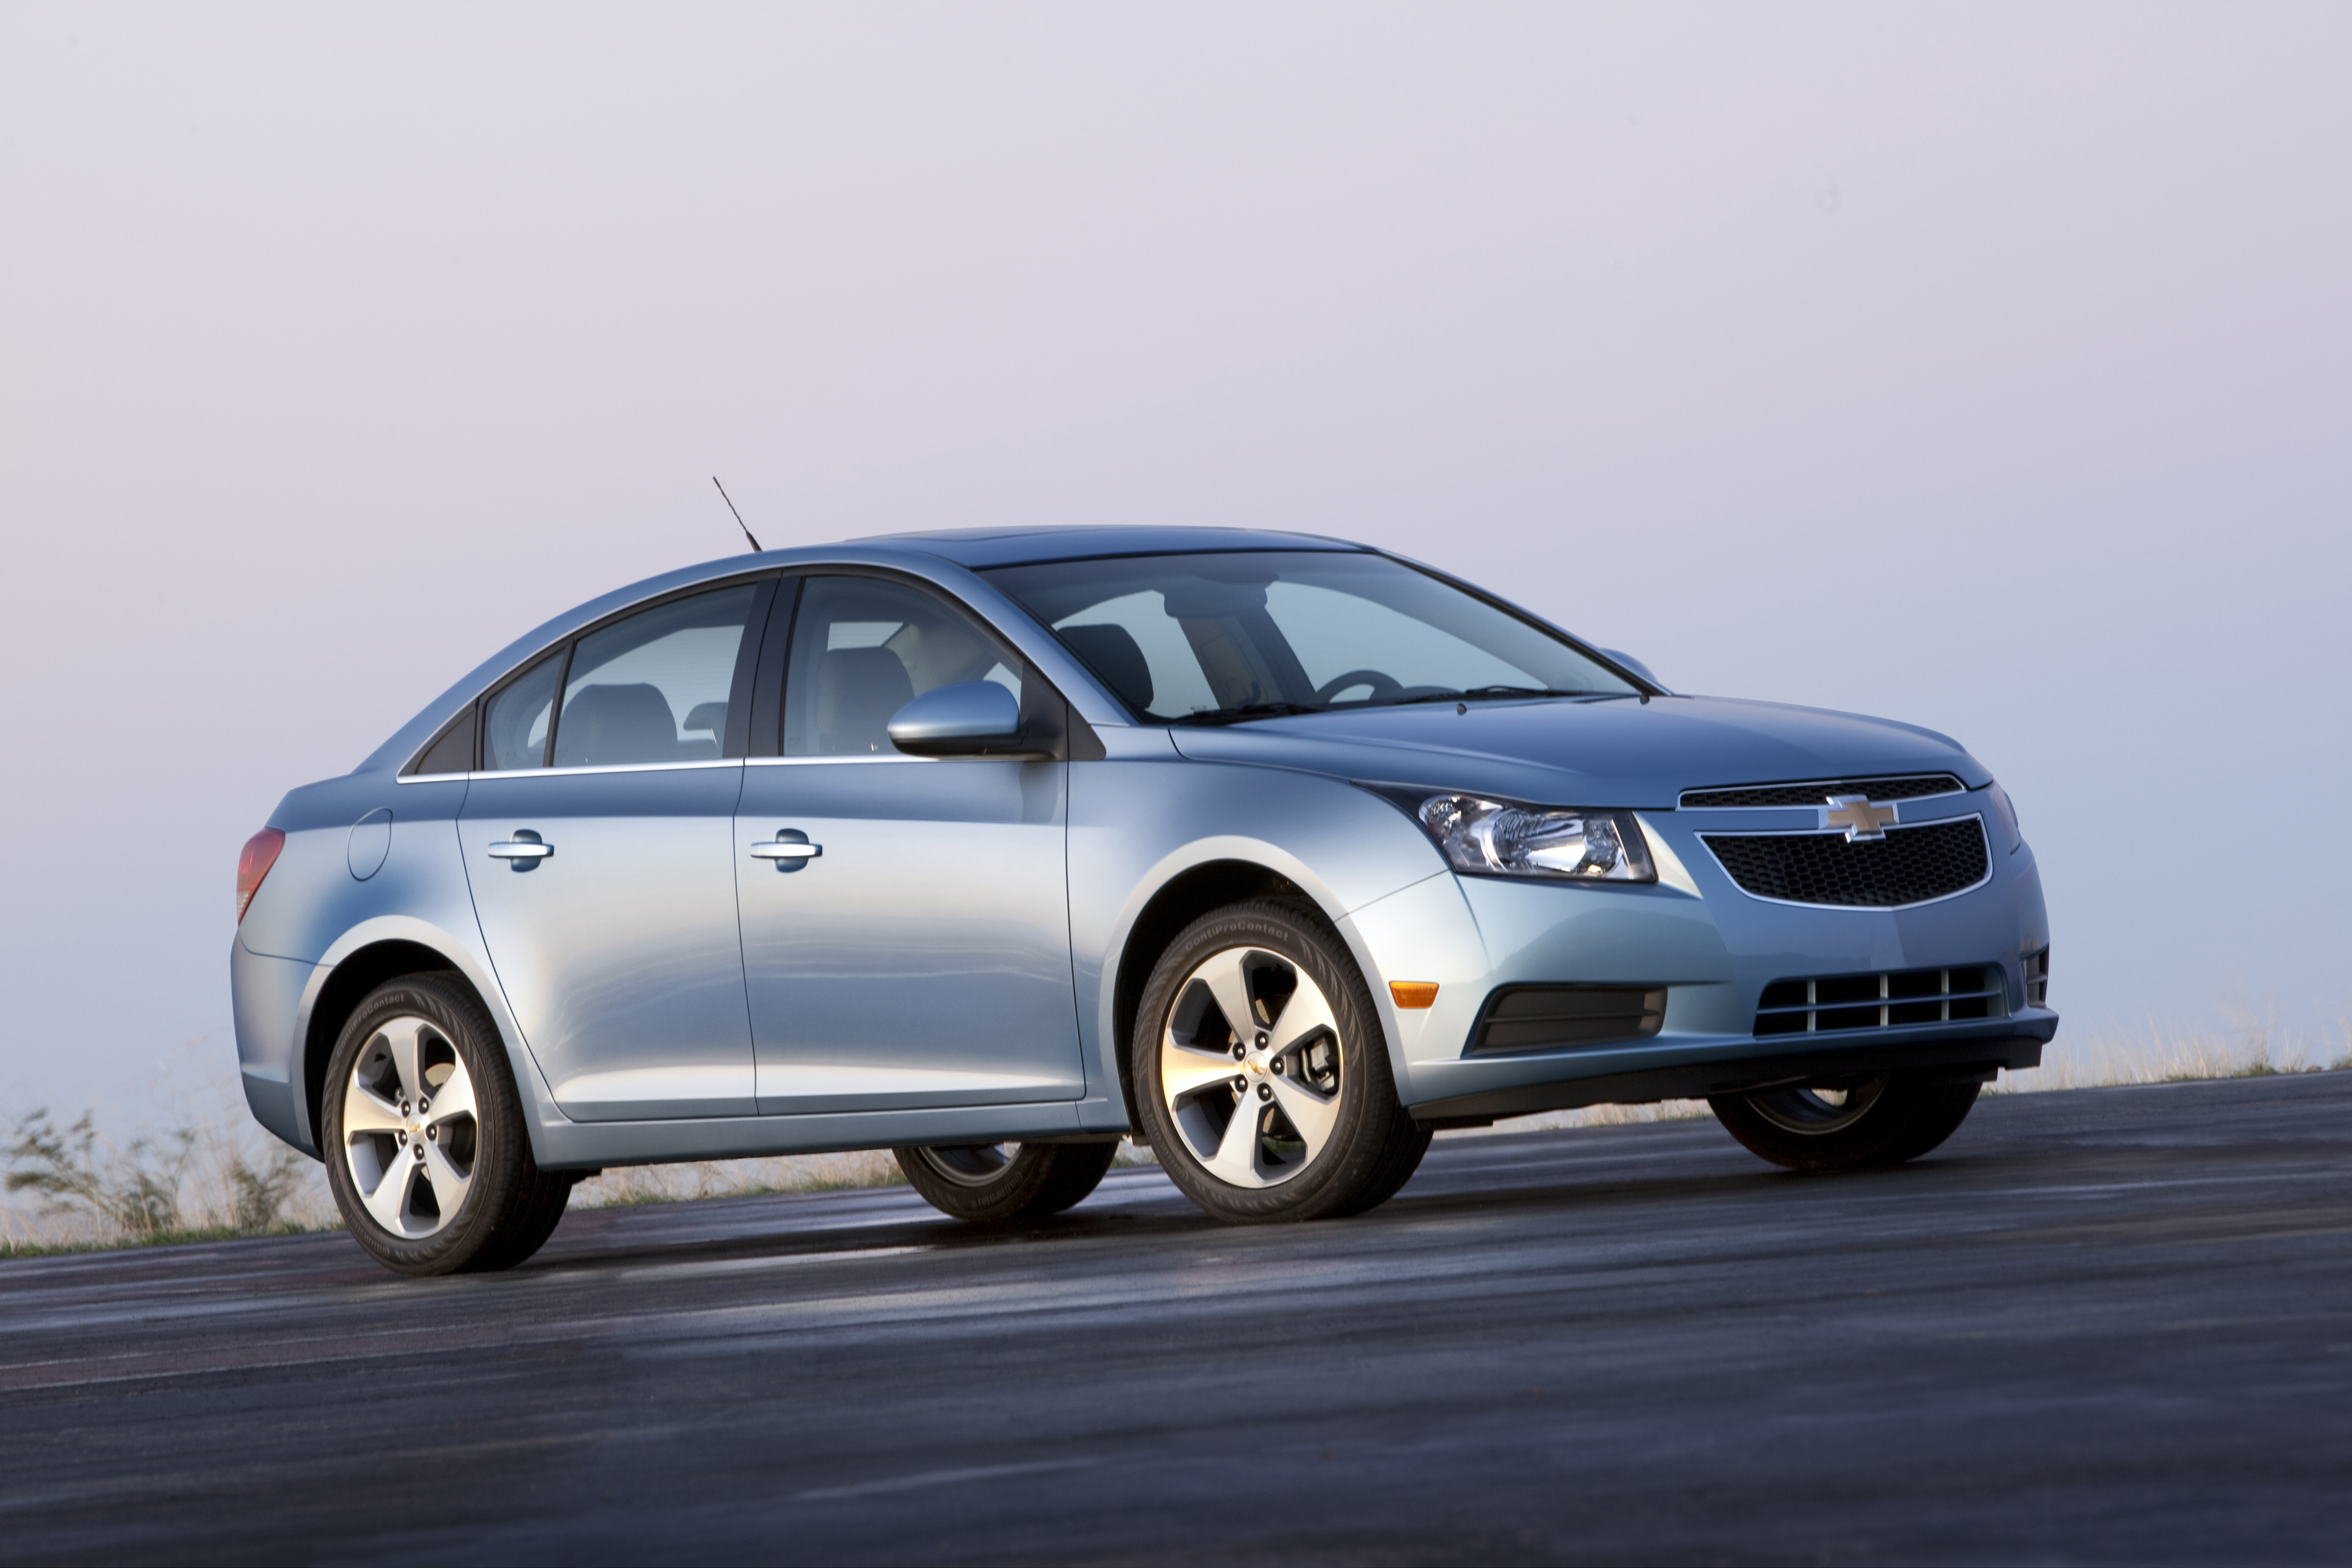 2011 Chevrolet Cruze Wallpapers Download